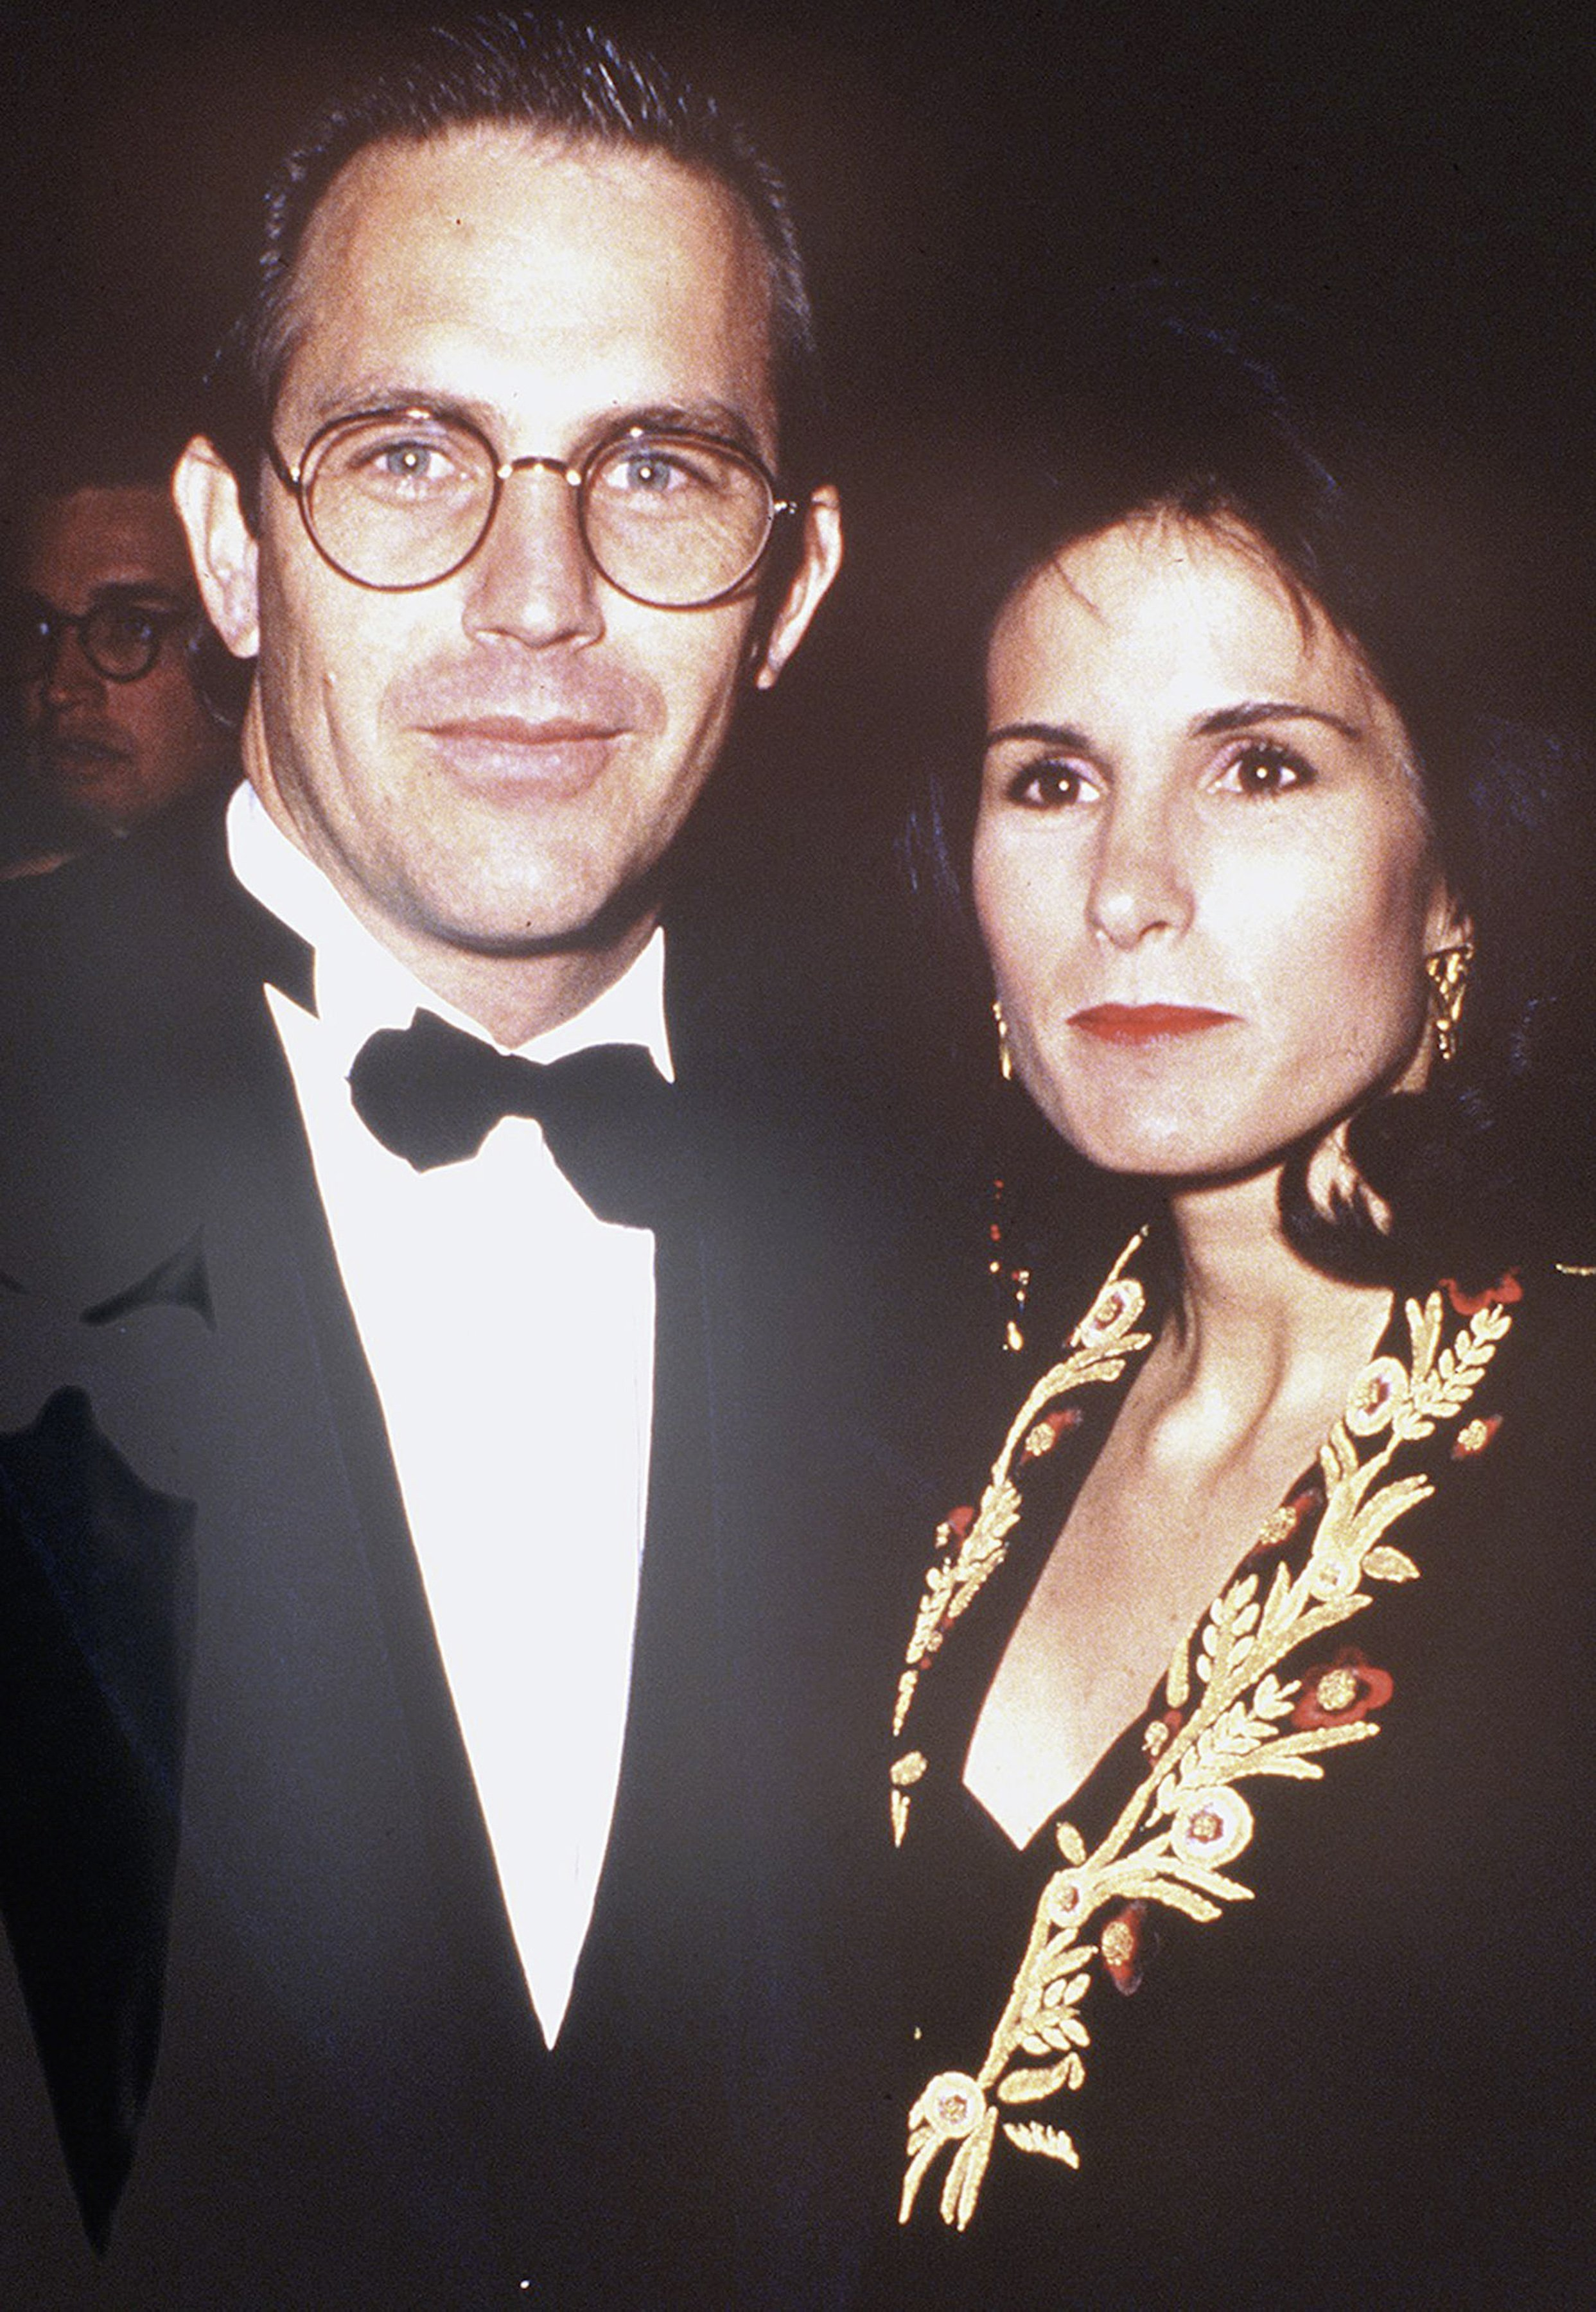 Cindy Costner and Kevin Costner at the 'Dances With Wolves' Los Angeles Premiere, November 1990 | Photo: GettyImages